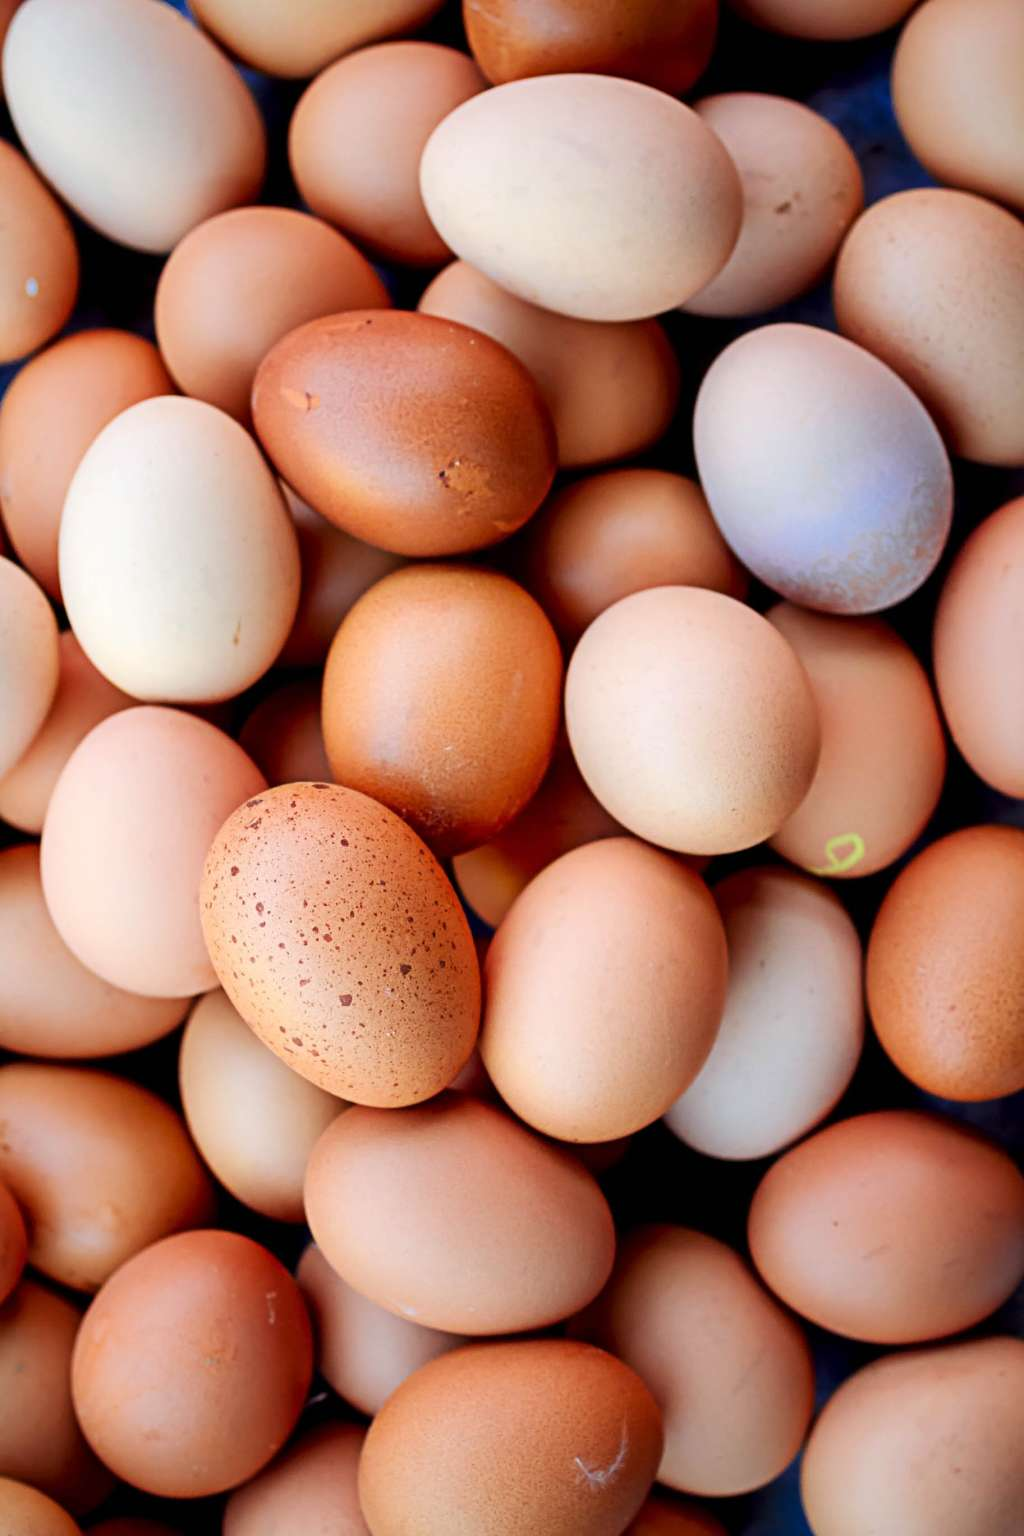 How Long Can You Keep Eggs?